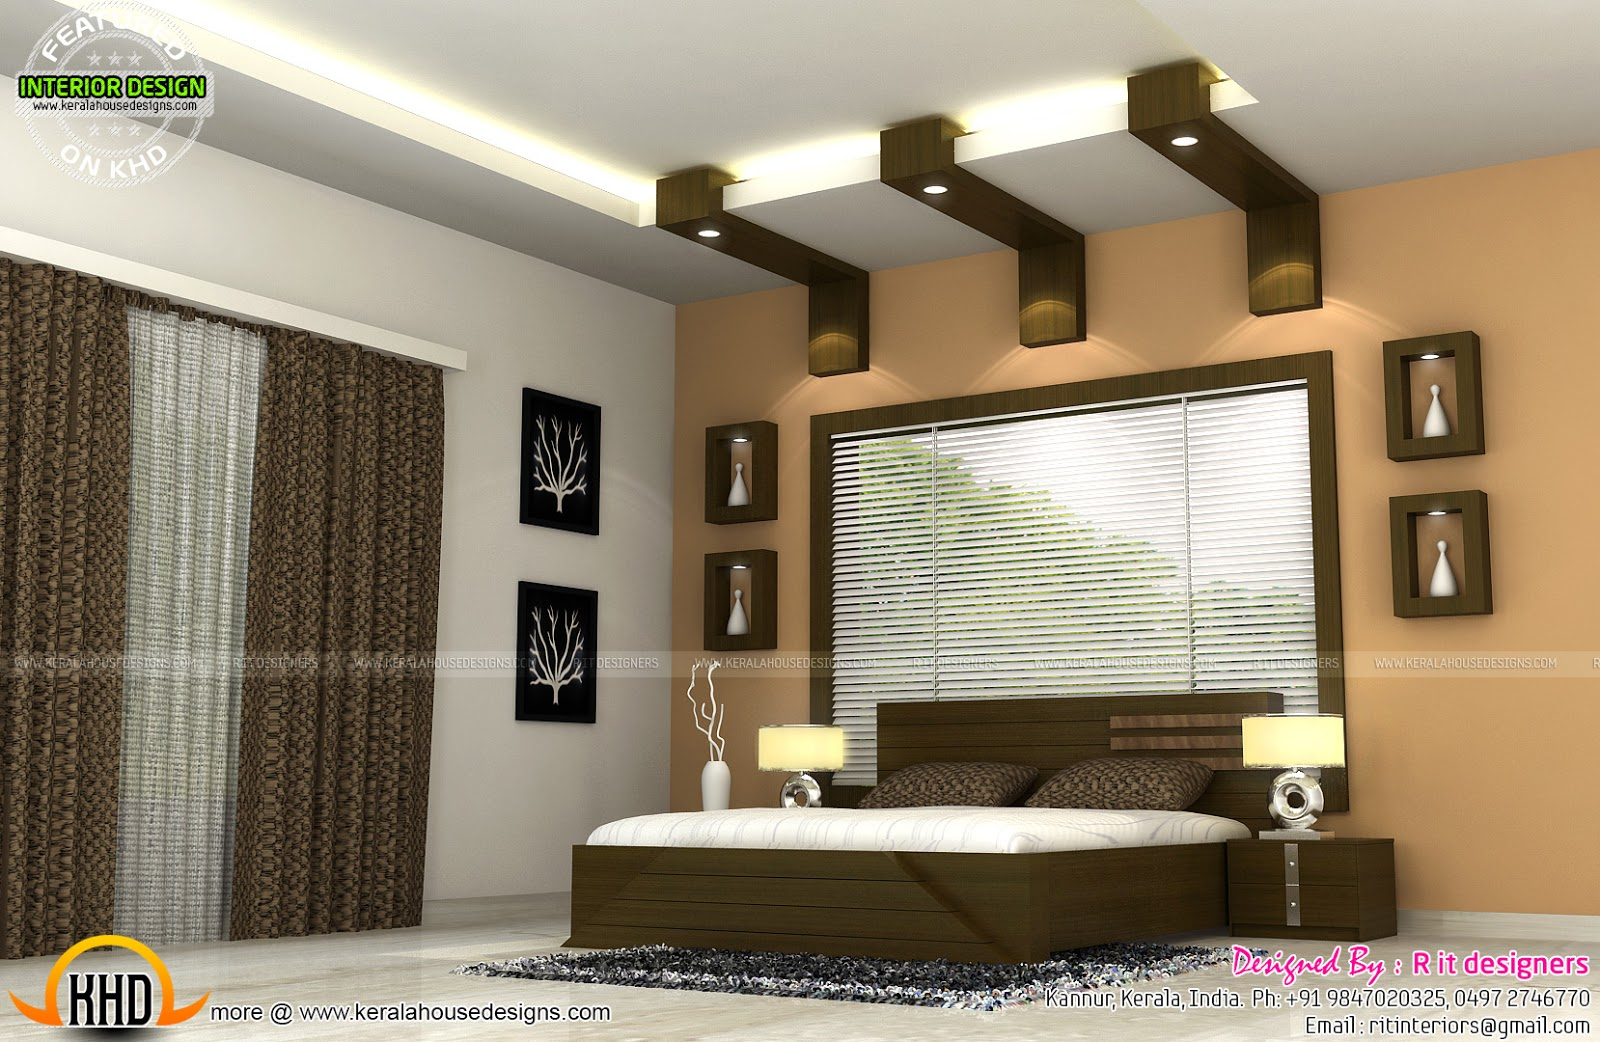 Interiors of bedrooms and kitchen kerala home design and for Interior designs in home